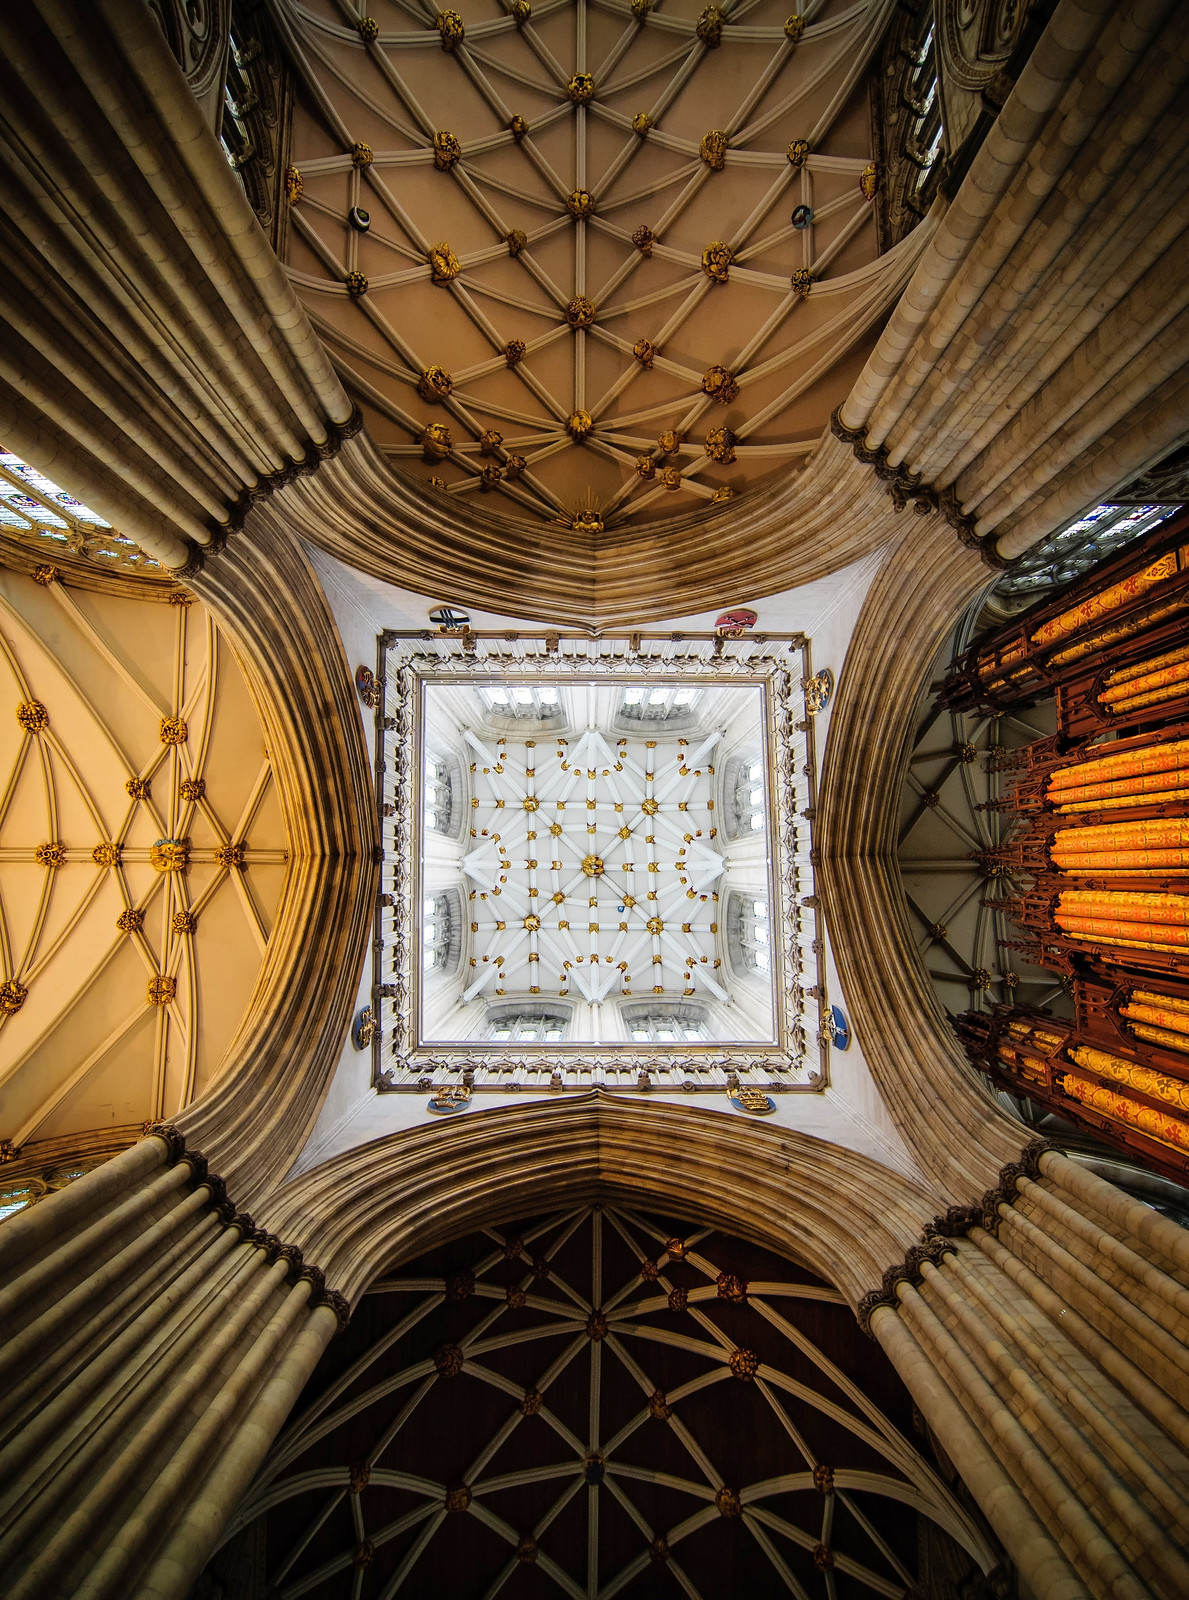 Vault of the central tower of York Minster. Credit Archangel12